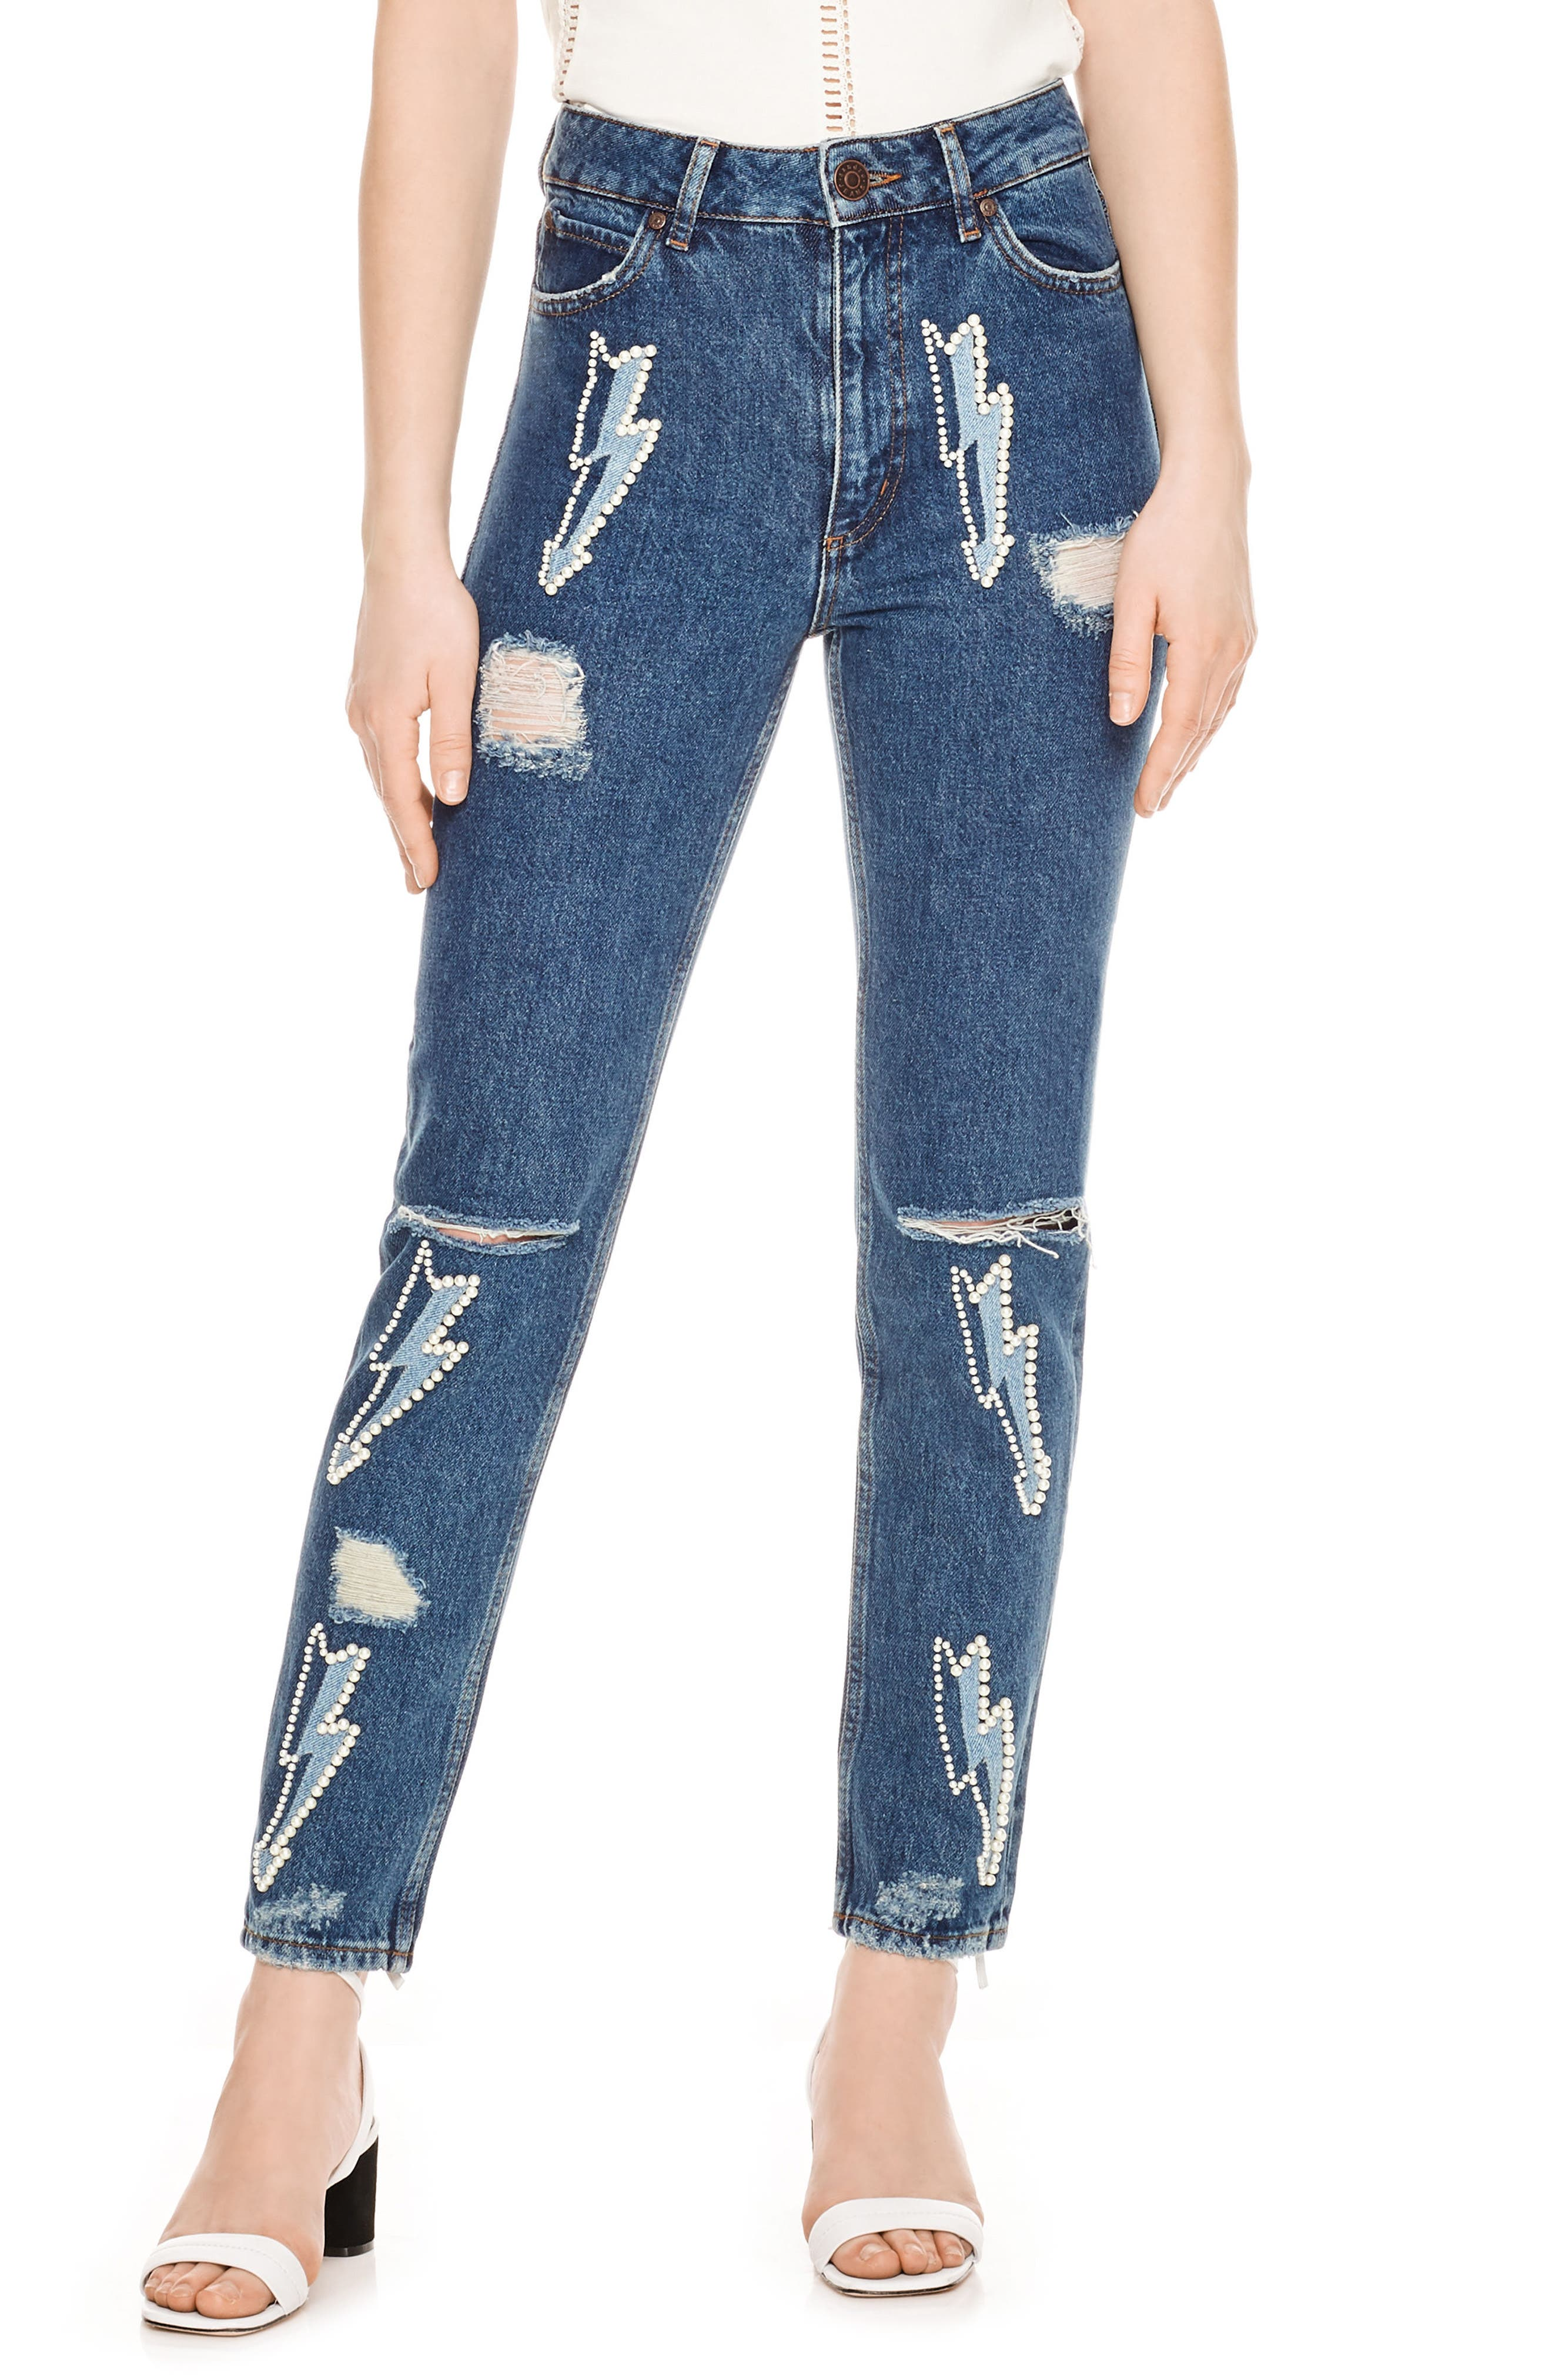 Ripped Lighting Bolt Jeans,                         Main,                         color, Blue Vintage - Denim